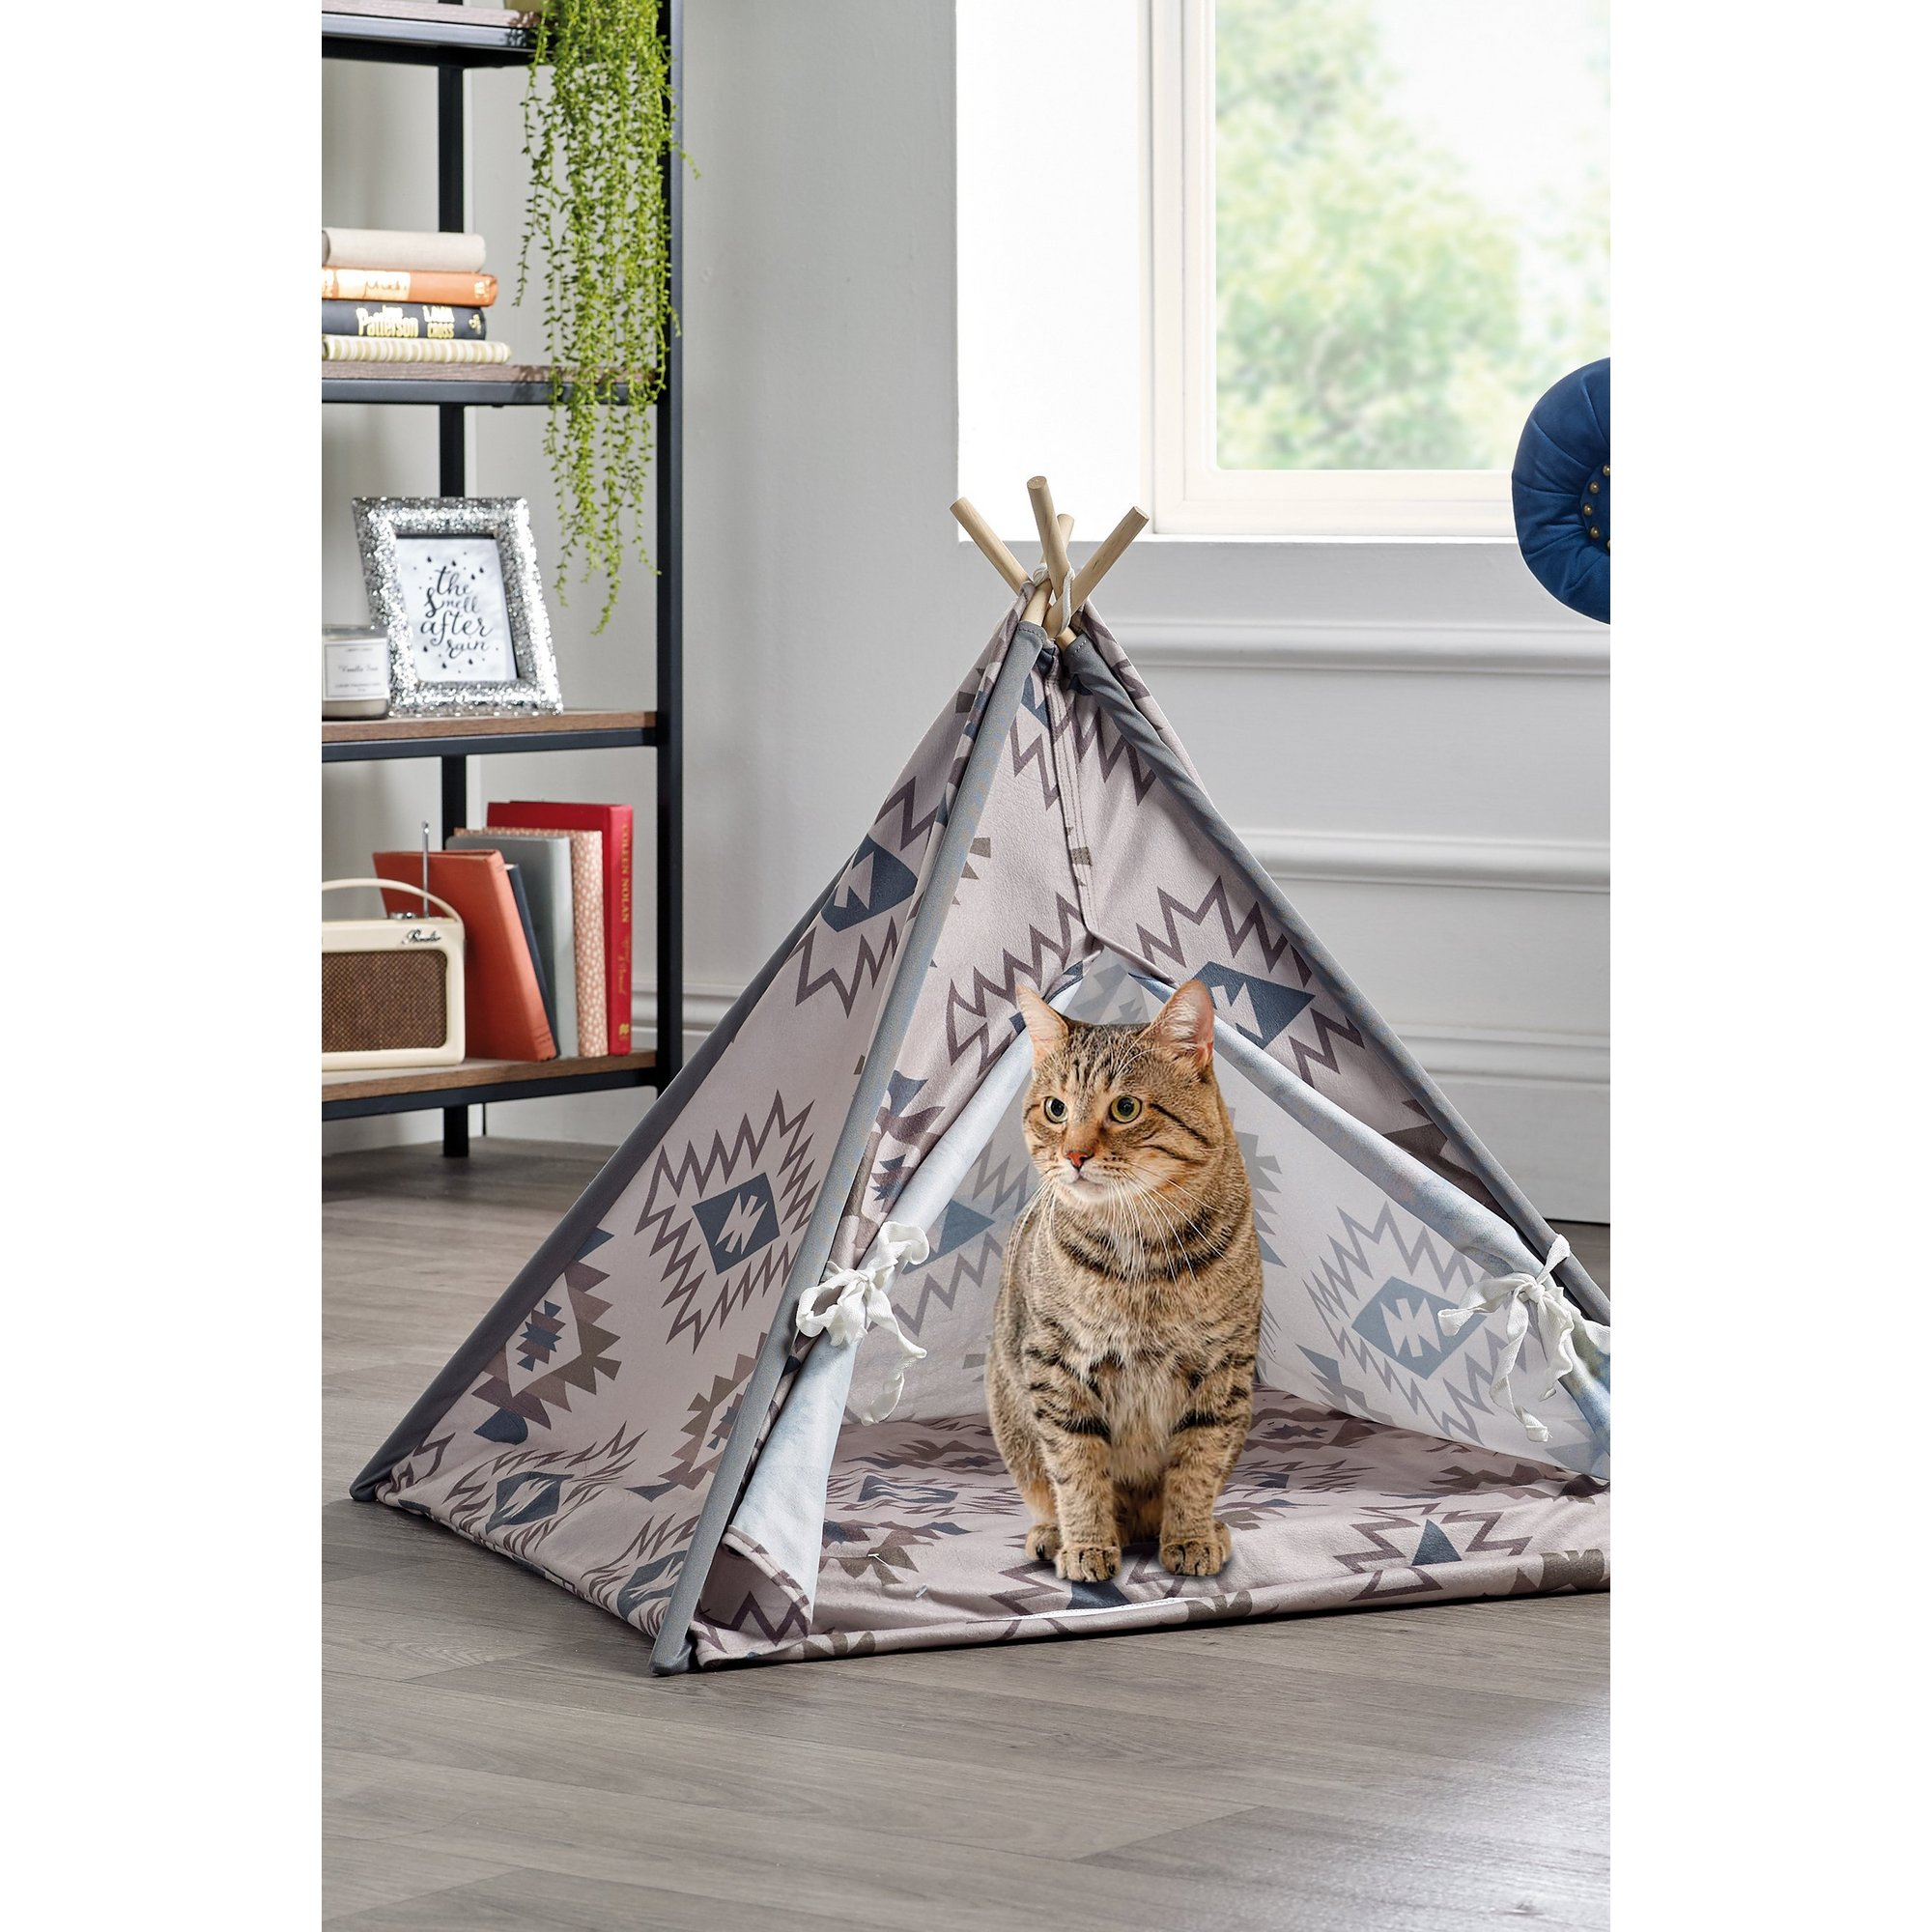 Image of Aztec Fleece Pet Teepee